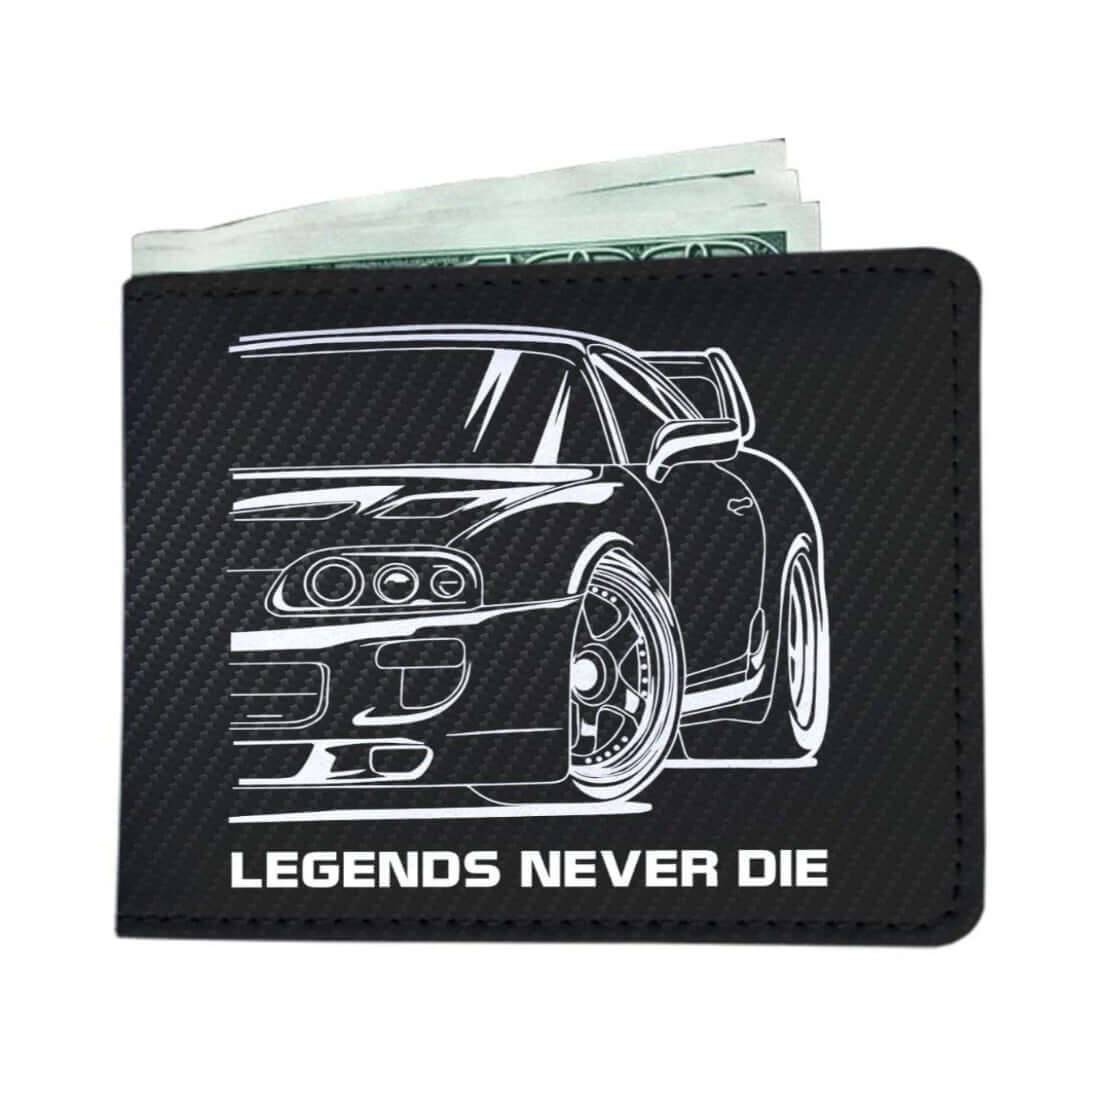 MK4 Legends Never Die - Car Wallet